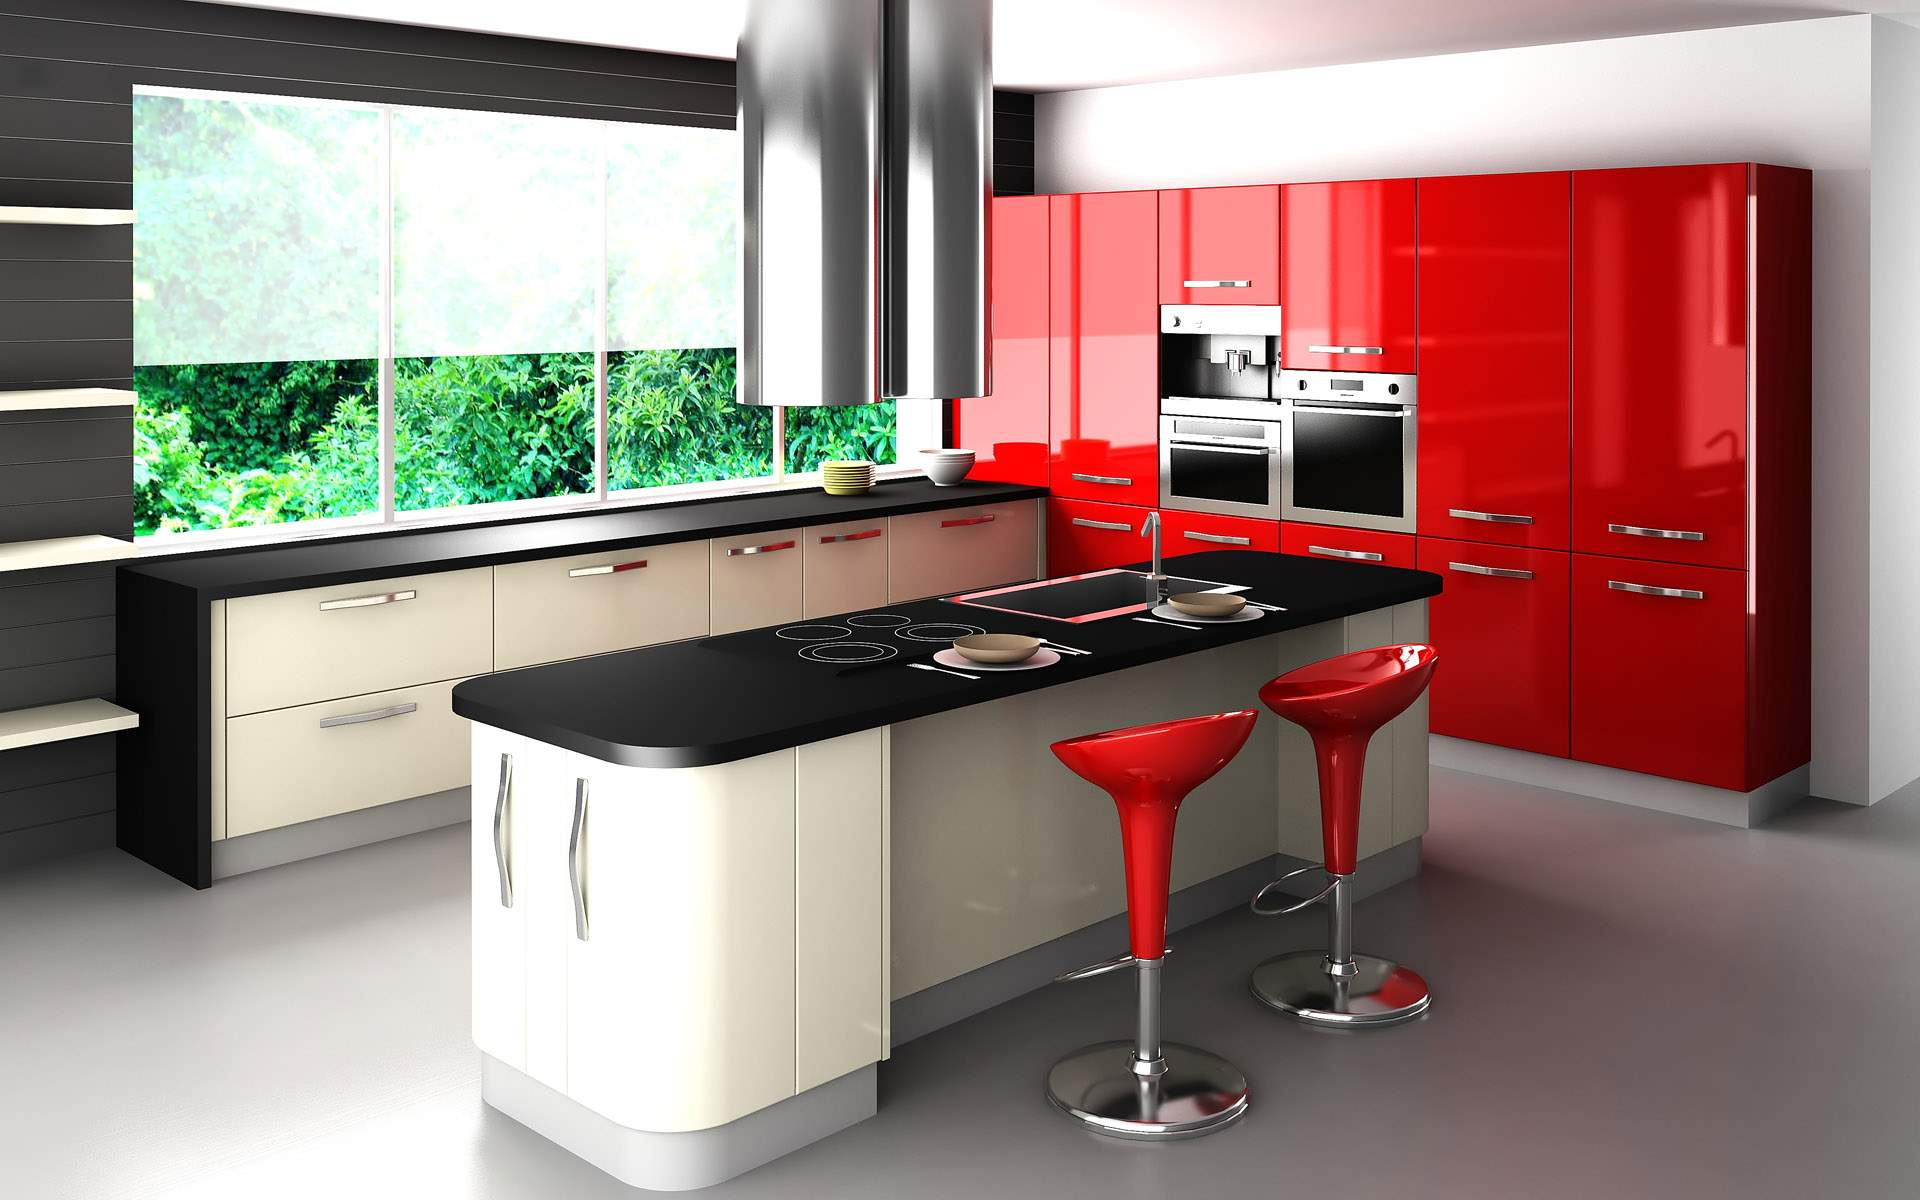 Beautiful Kitchen Decor Ideas Using Red Cabinet Also Bar Chair